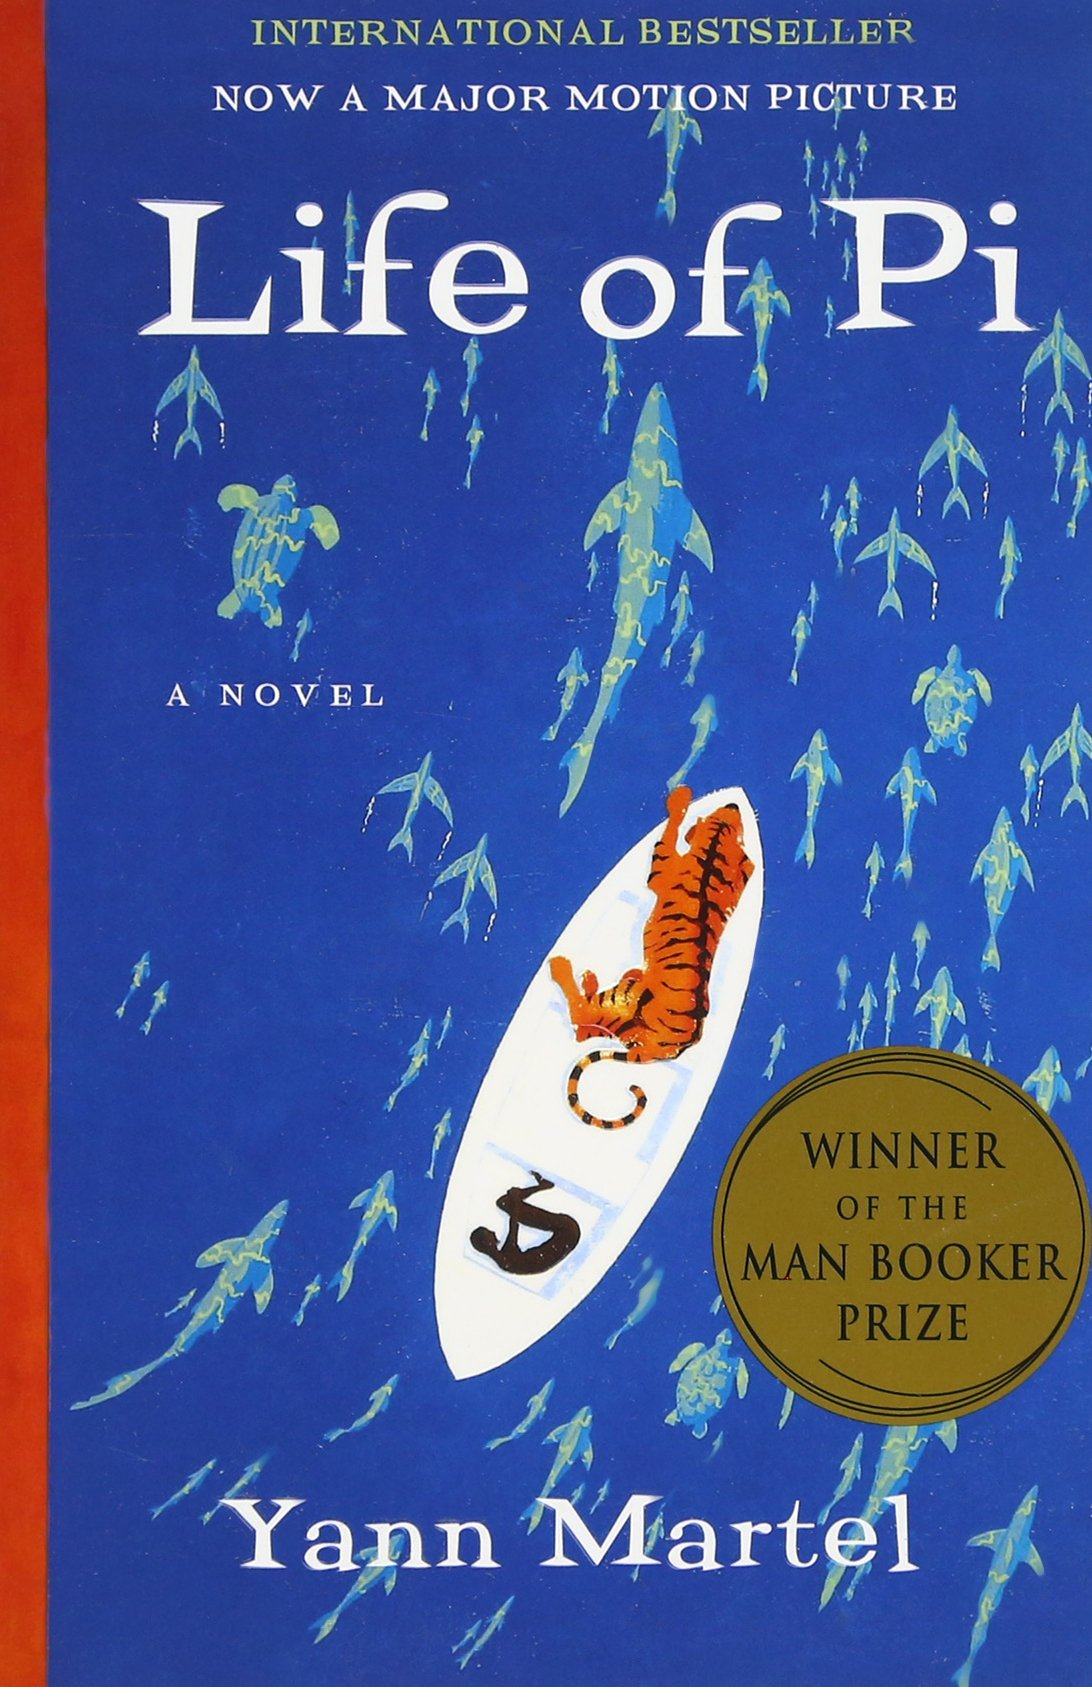 Amazon.com: Life of Pi (9780156027328): Martel, Yann: Books